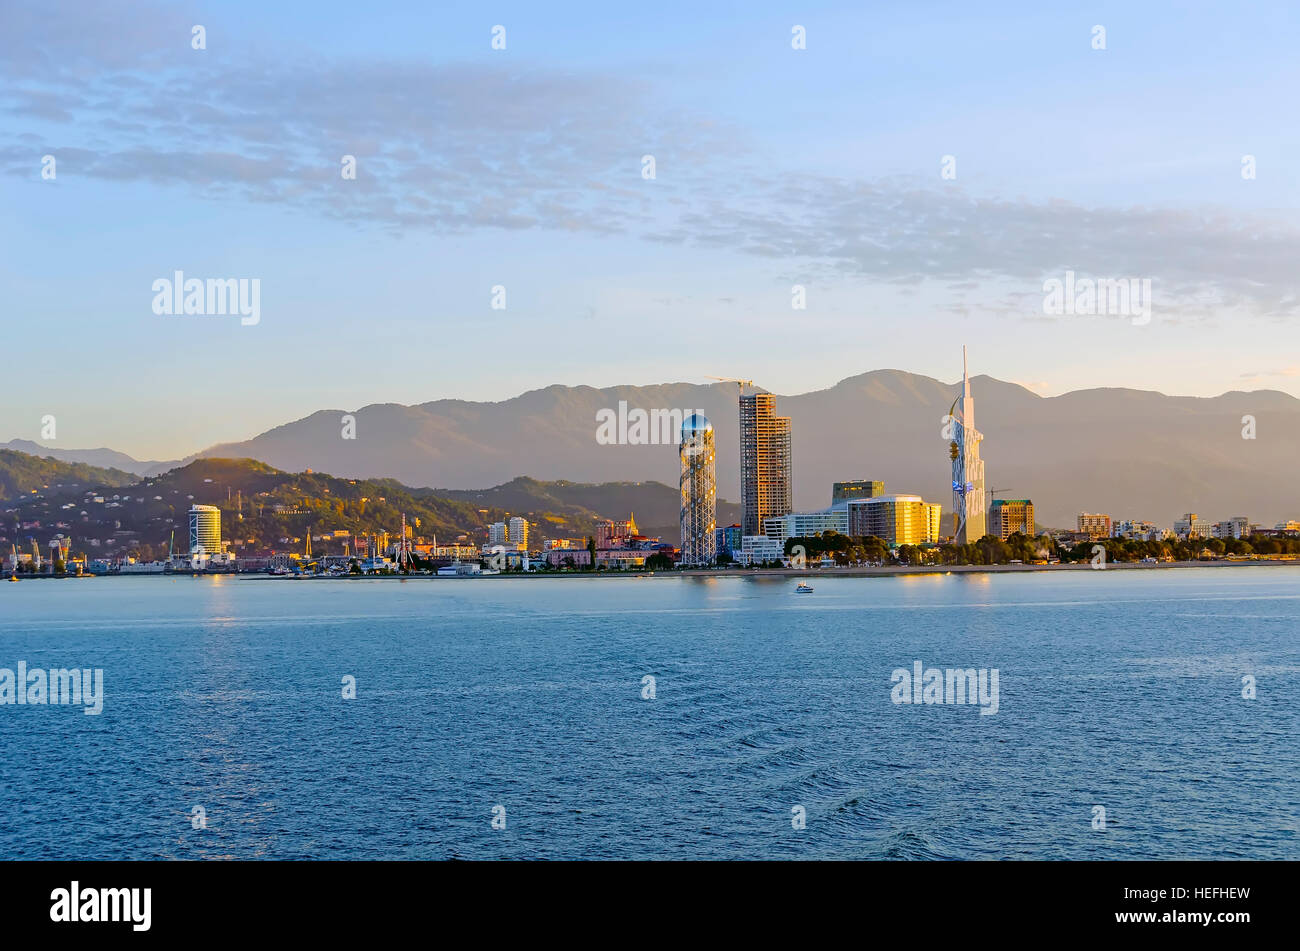 Batumi Georgia architectural styles seen seen from the Black Sea. - Stock Image